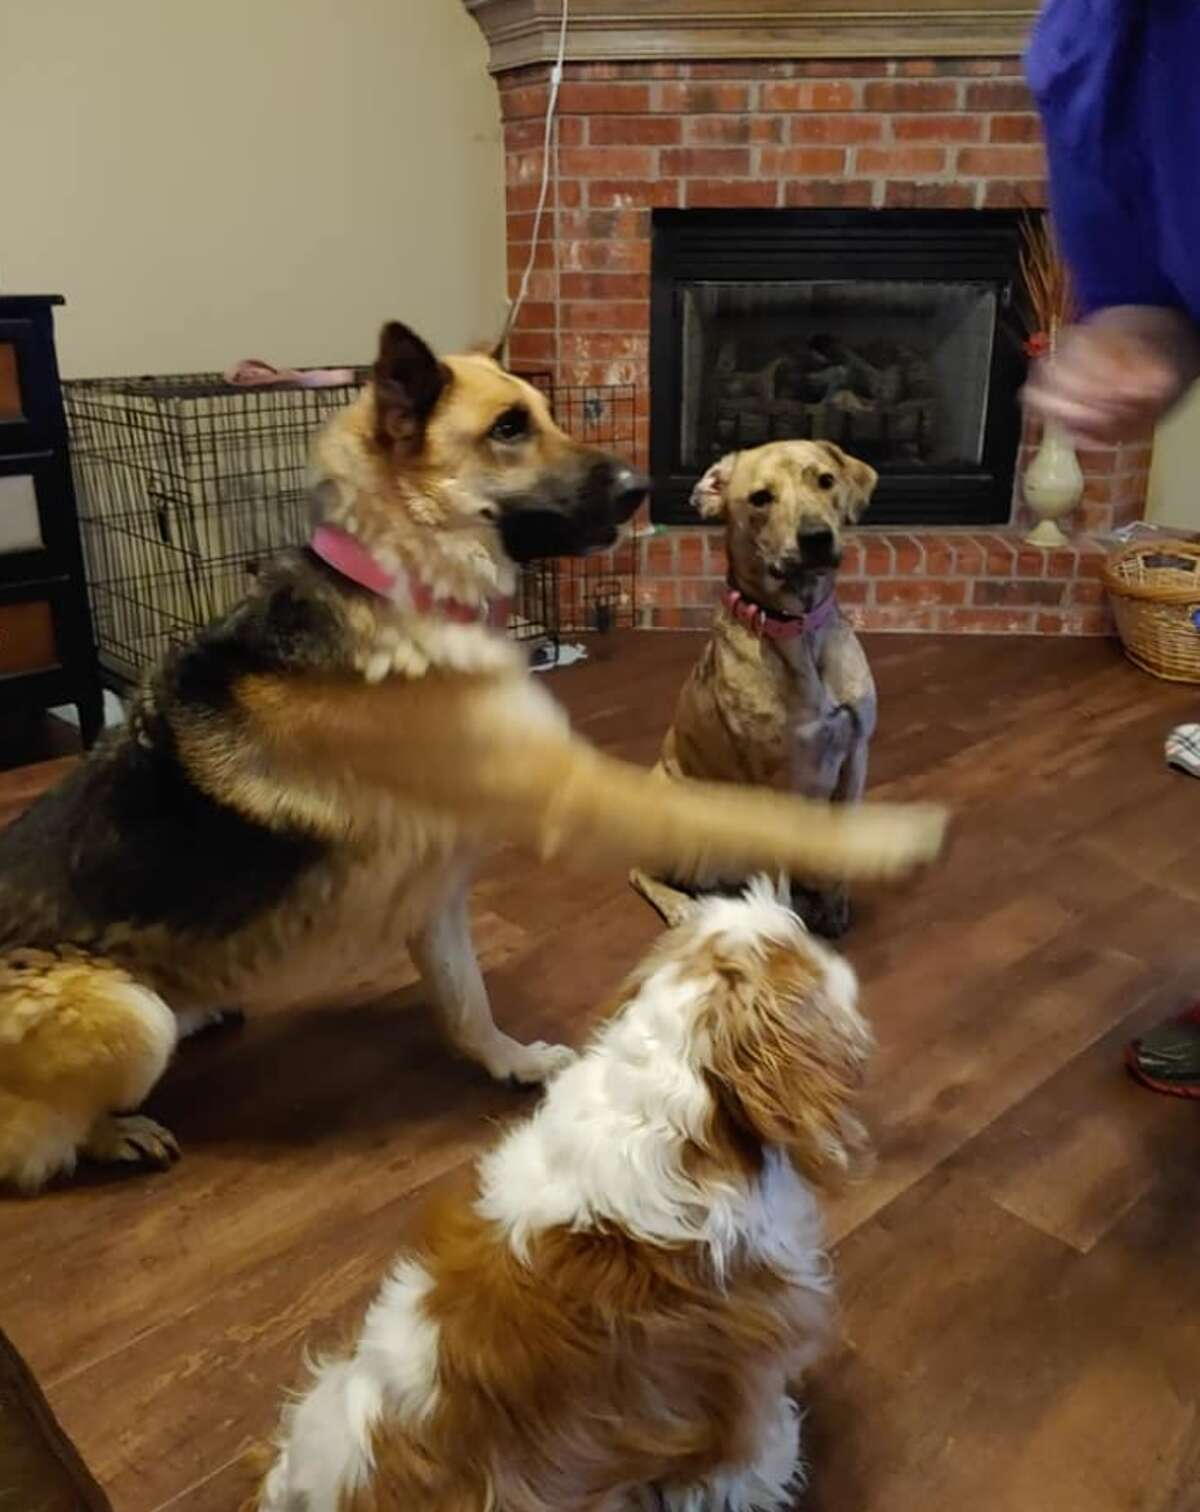 Luna Rose plays happily with other pups in the Oklahoma City rescuer's home.